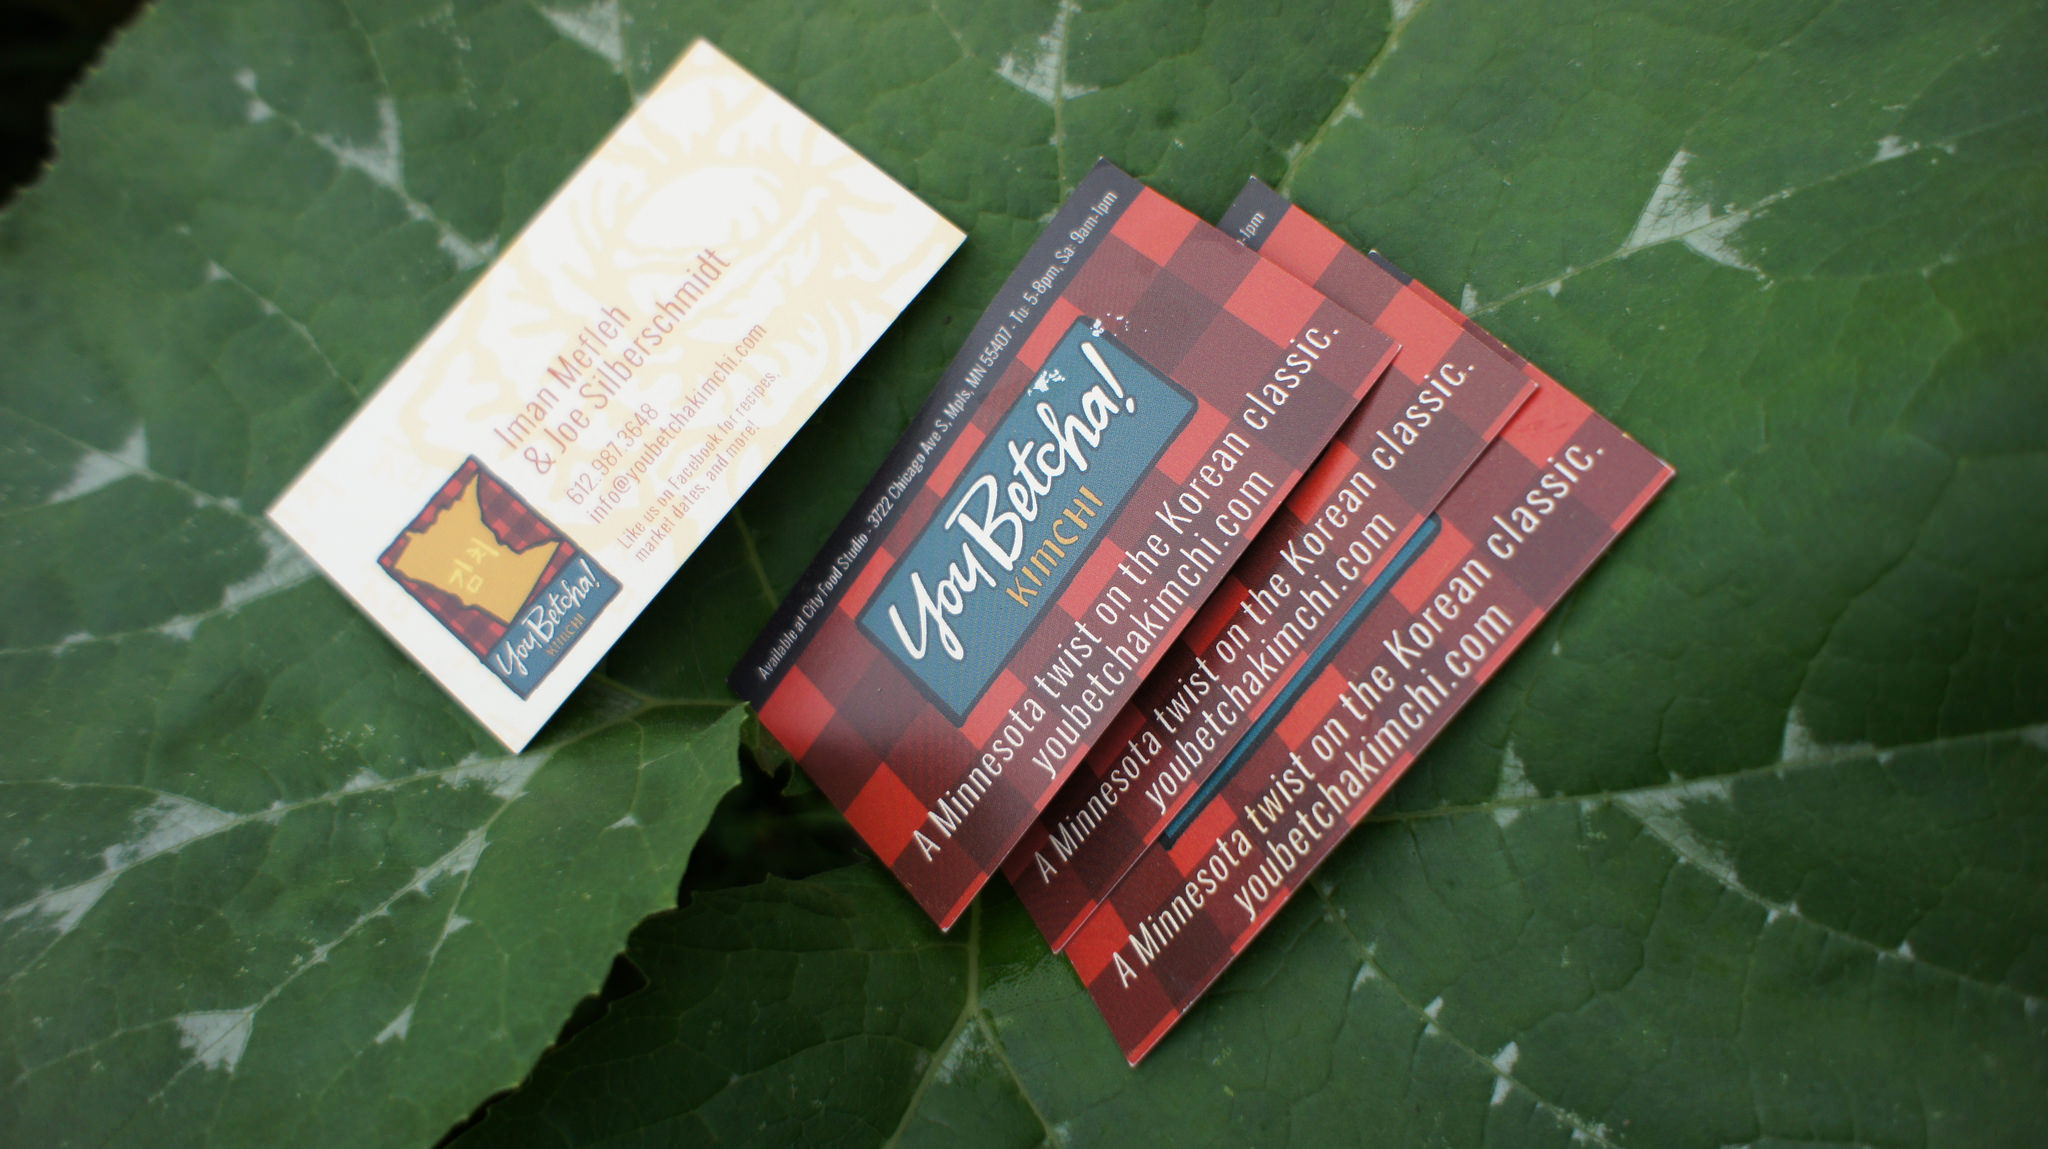 YBK Business Cards on Large Leaf